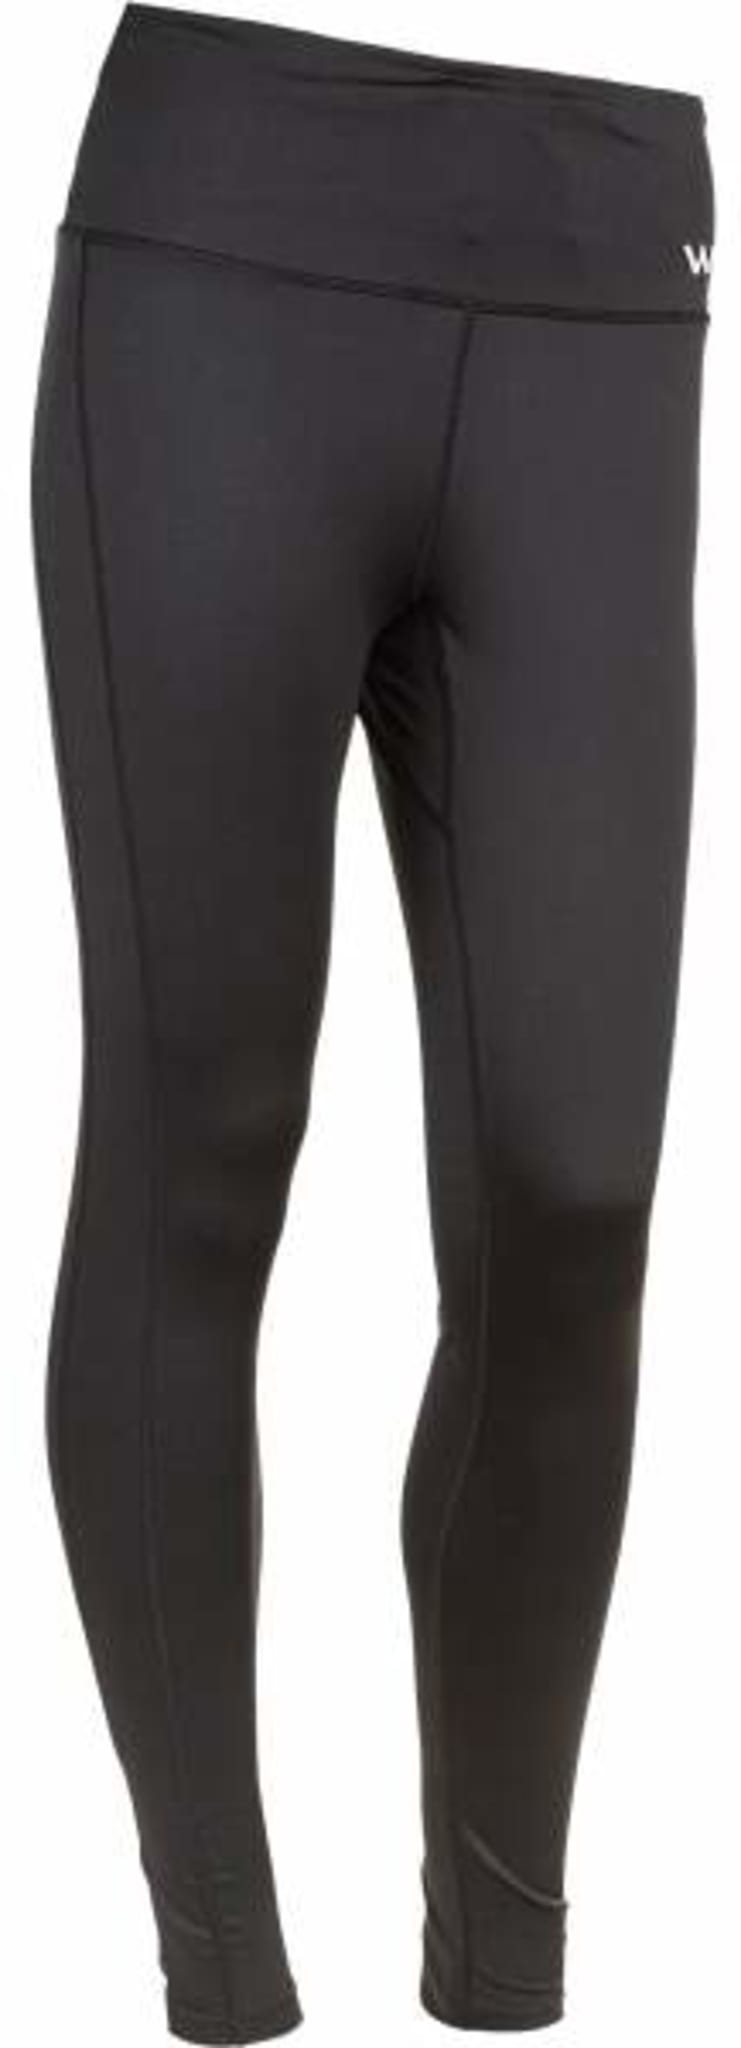 Grovia Running Tights Long W